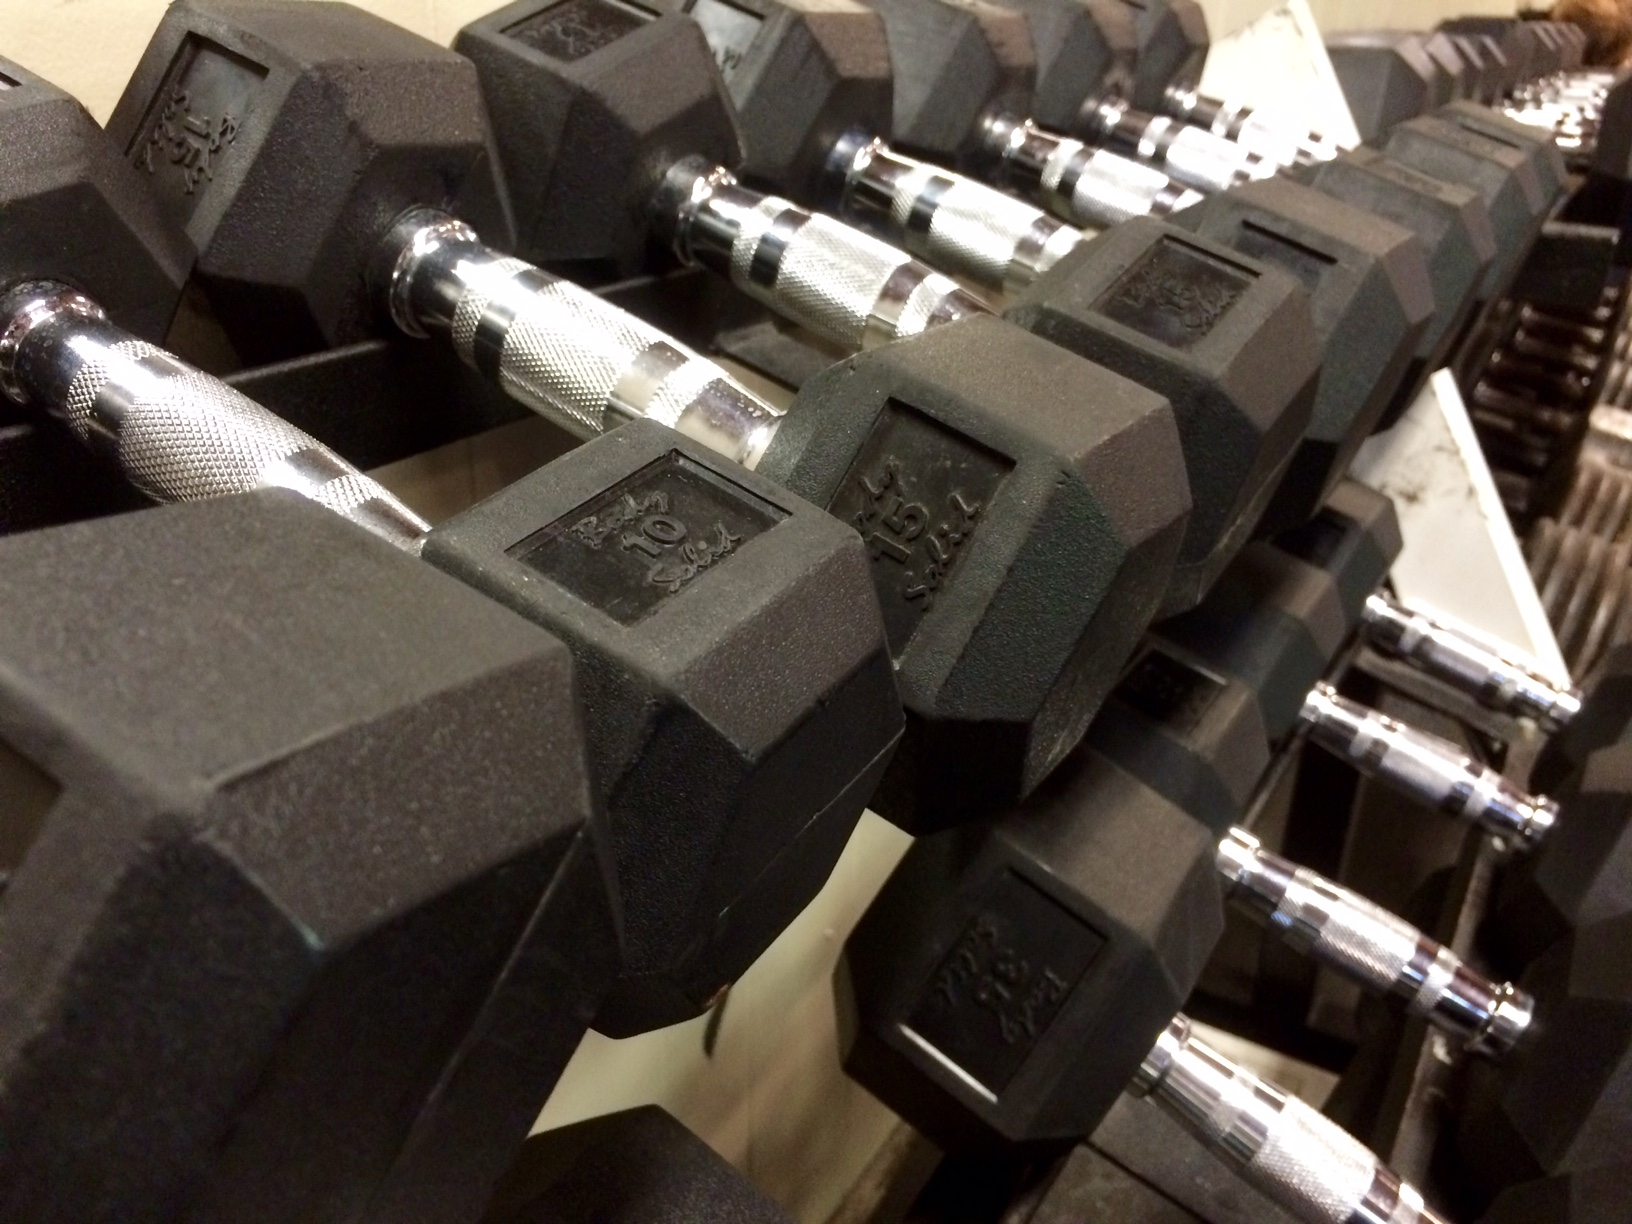 New Rubber Dumbbells Updated in 2016